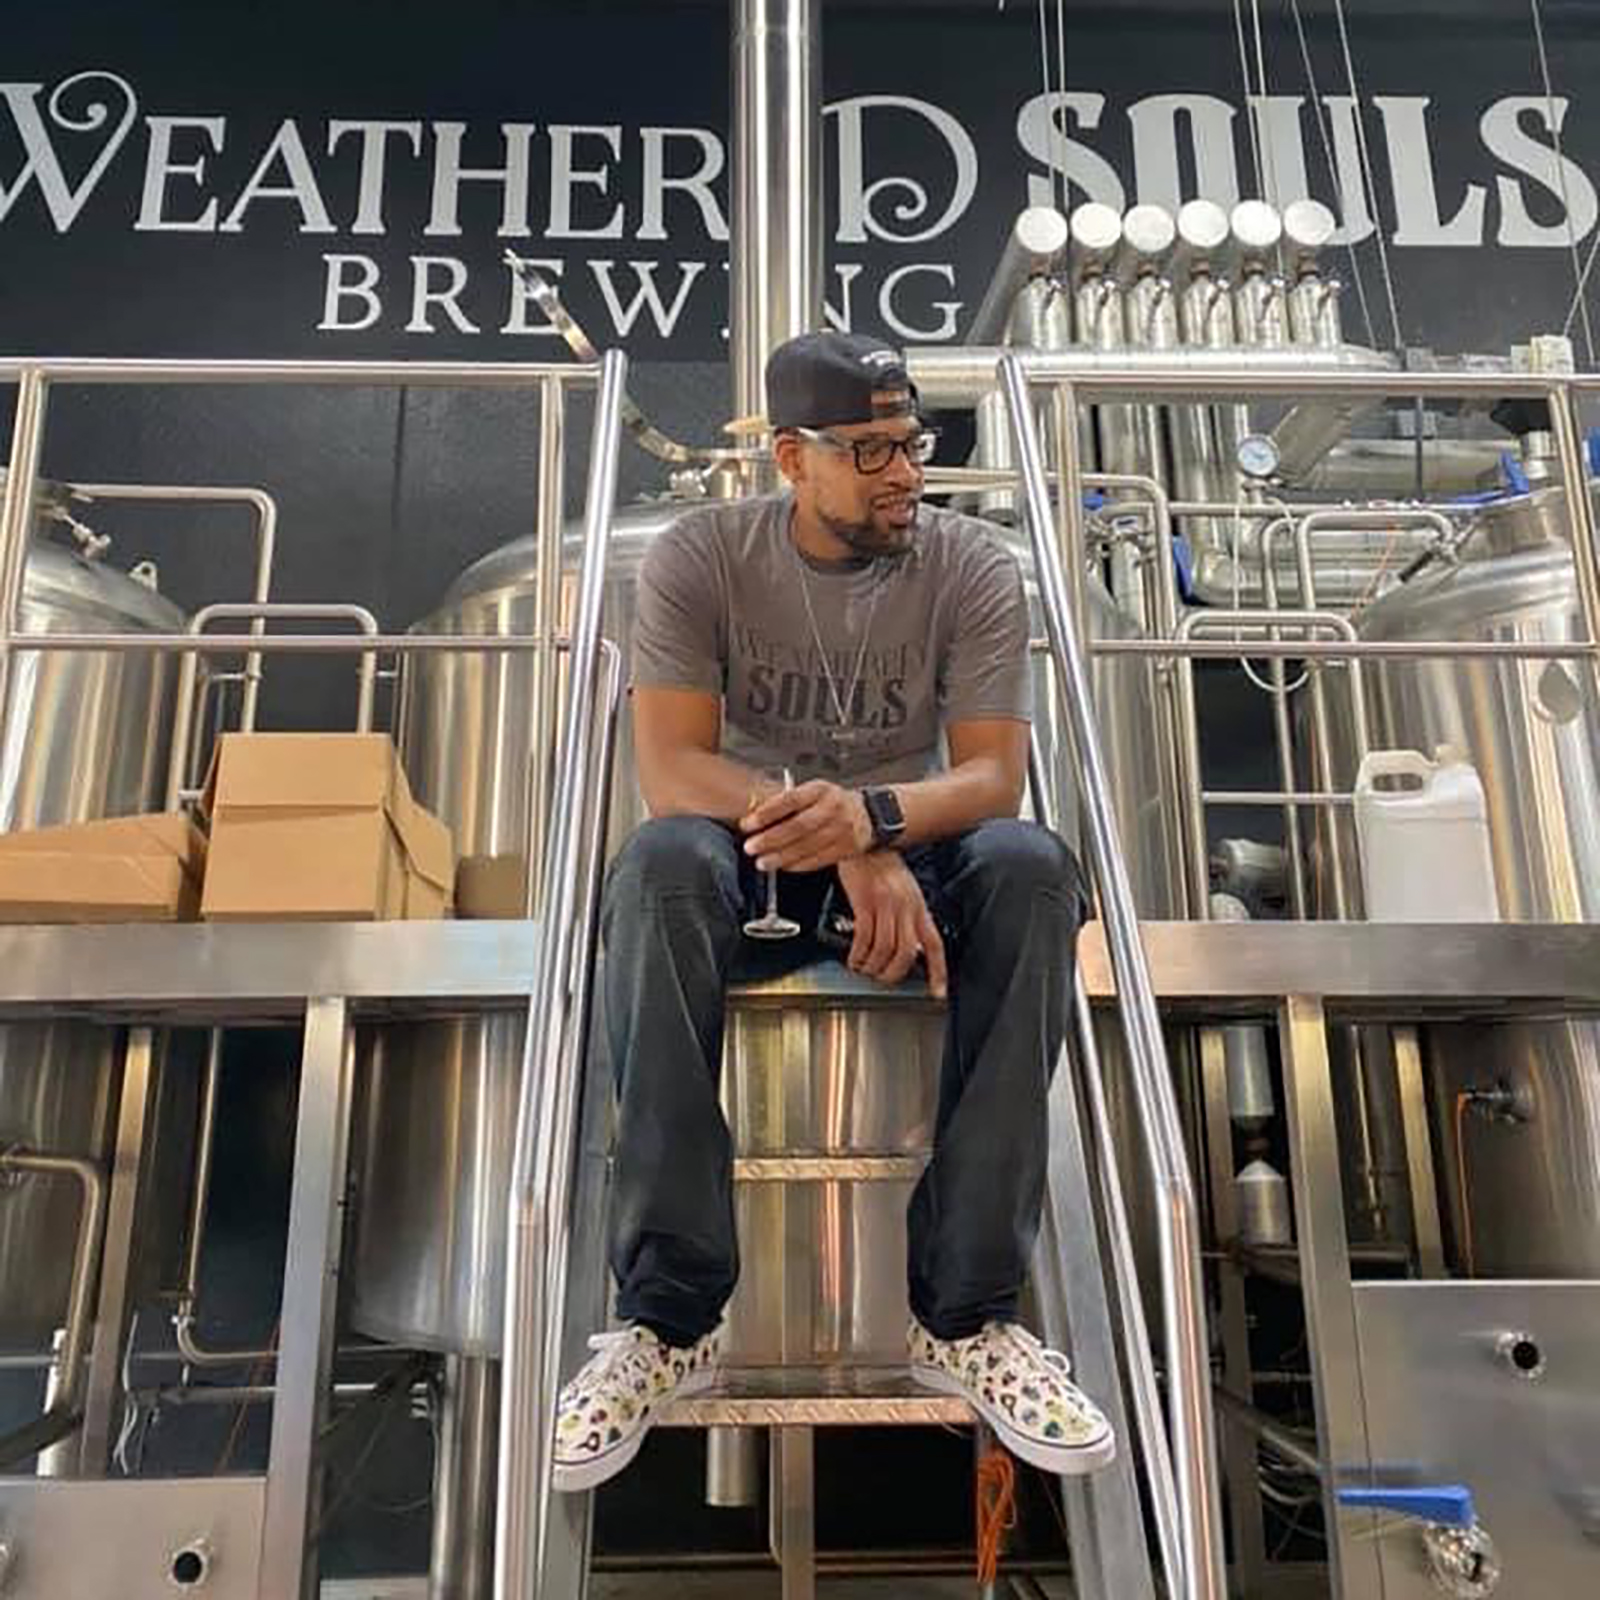 Craft brewers are releasing a new beer to support racial equality. But the industry has a long way to go